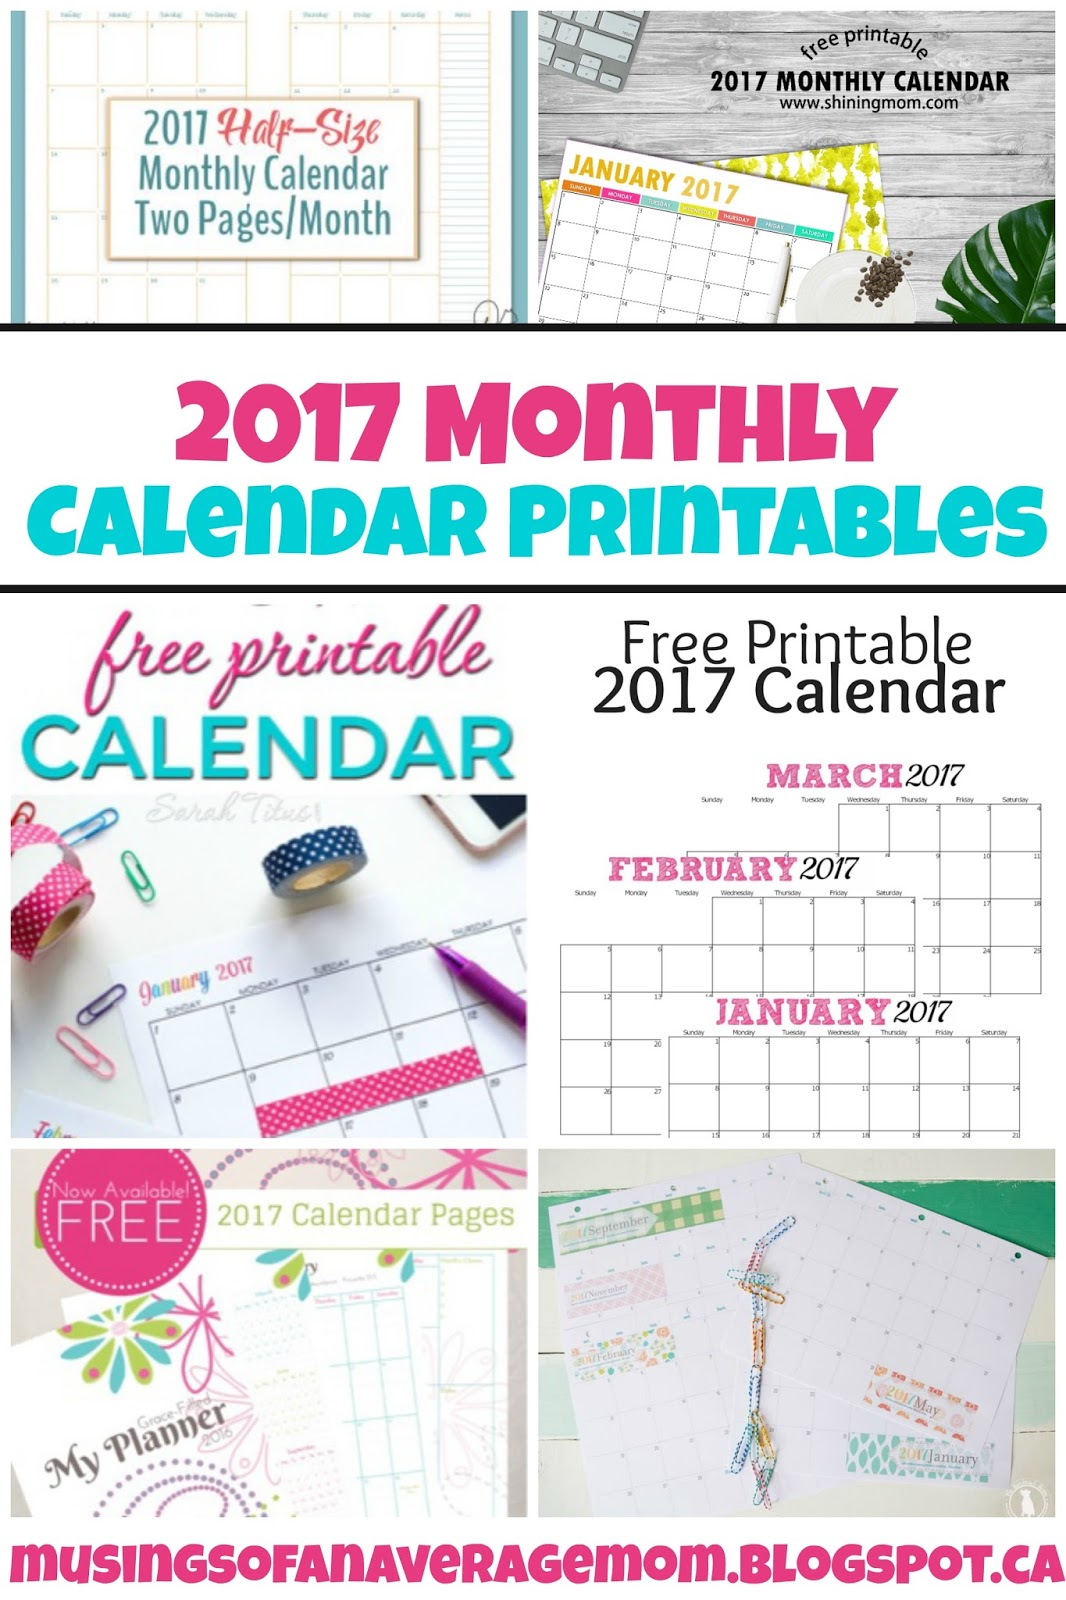 Musings of an Average Mom 2017 Monthly Calendars